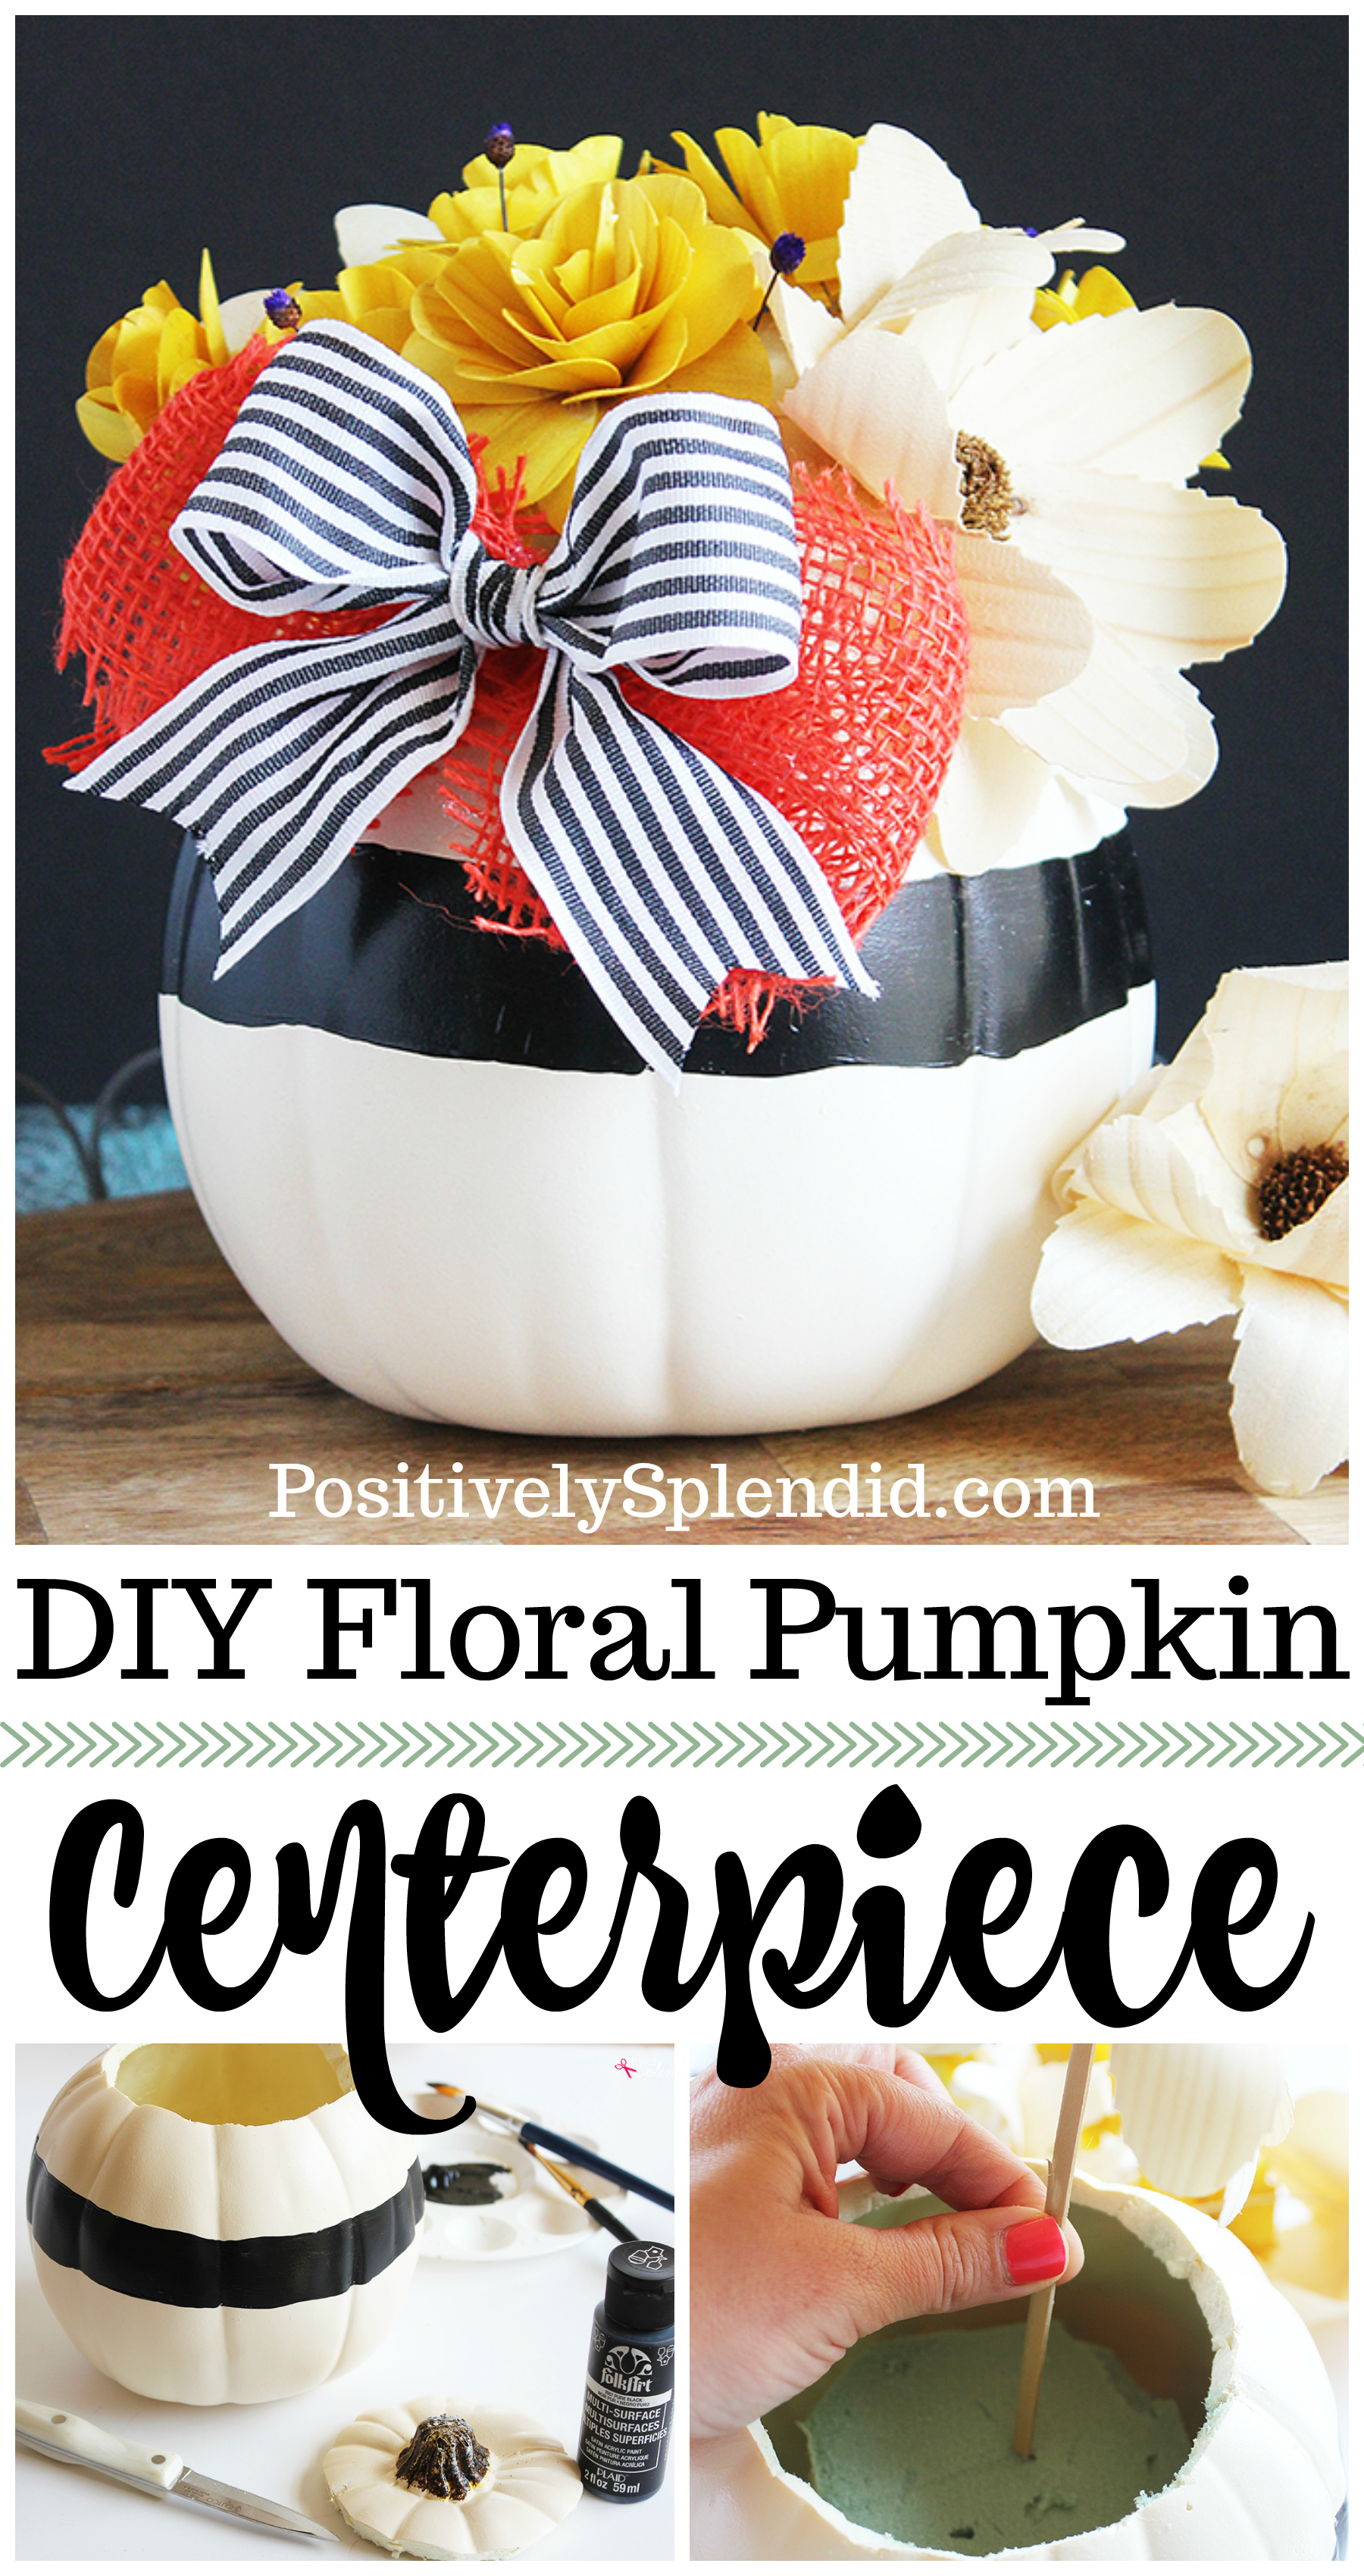 DIY Pumpkin Centerpiece - Made with pretty wood flowers and an artificial pumpkin from Michaels #makeitwithmichaels #michaelsmakers